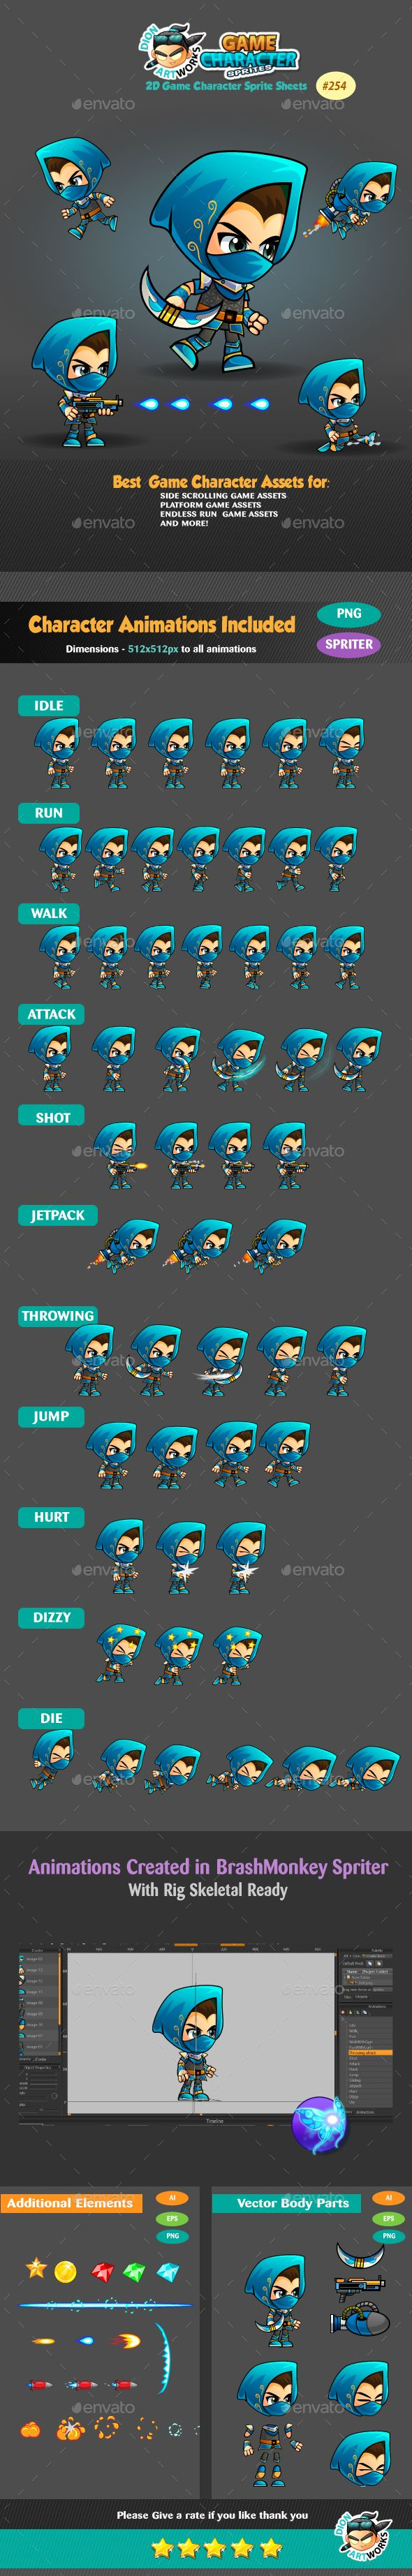 Assassin 2 Game Character Sprites Design Template 254 - Sprites Game Assets Design Template Vector EPS, Ai Illustrator. Download here: https://graphicriver.net/item/assassin-2-game-character-sprites-254/17743910?ref=yinkira